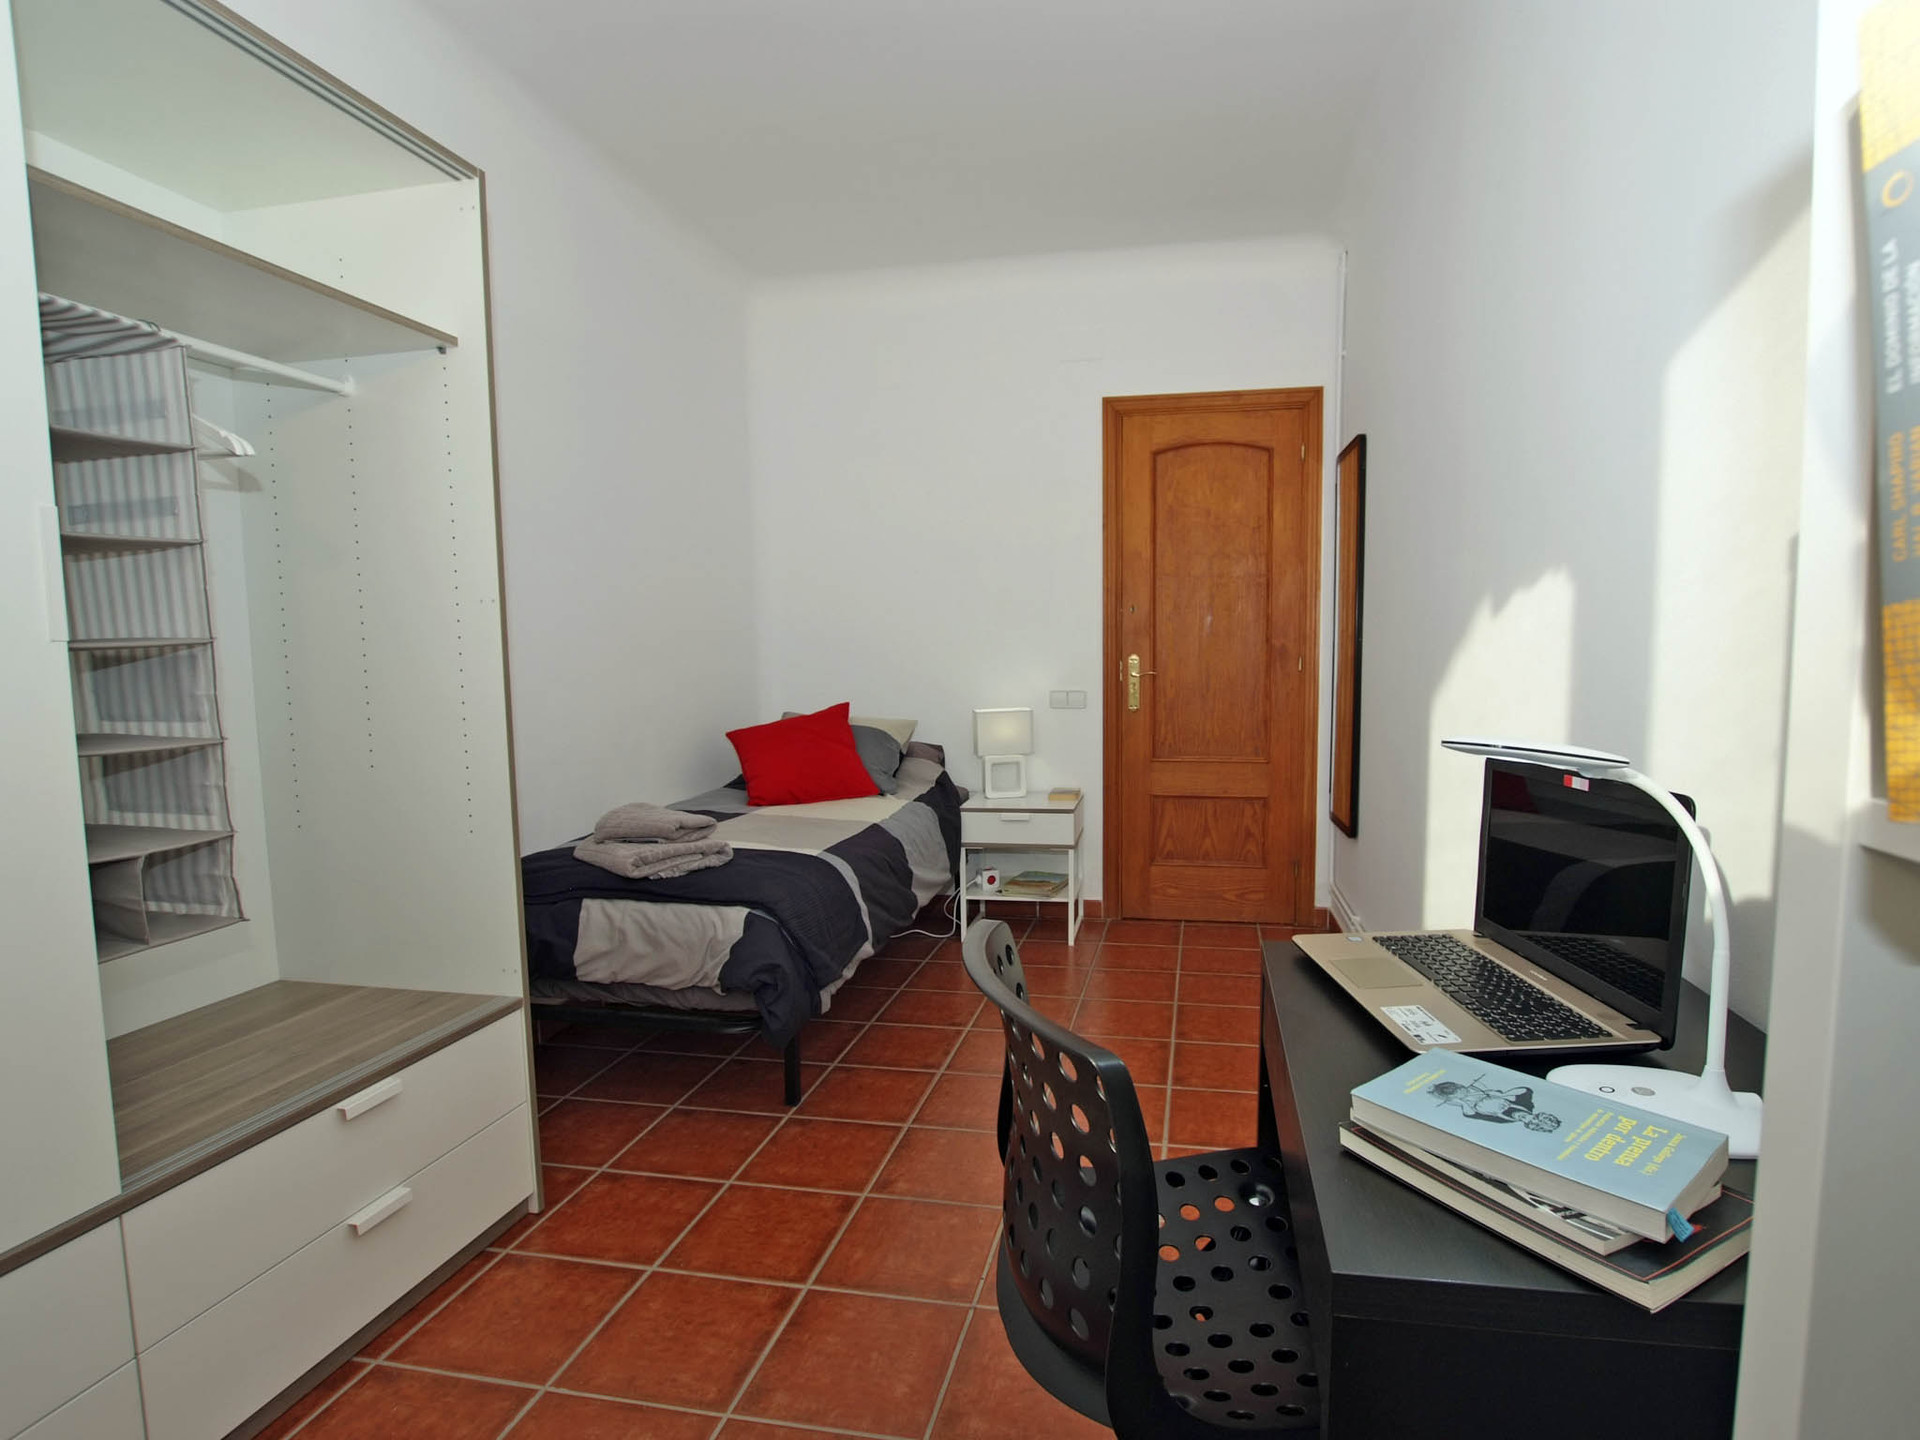 Student Residence - Single room